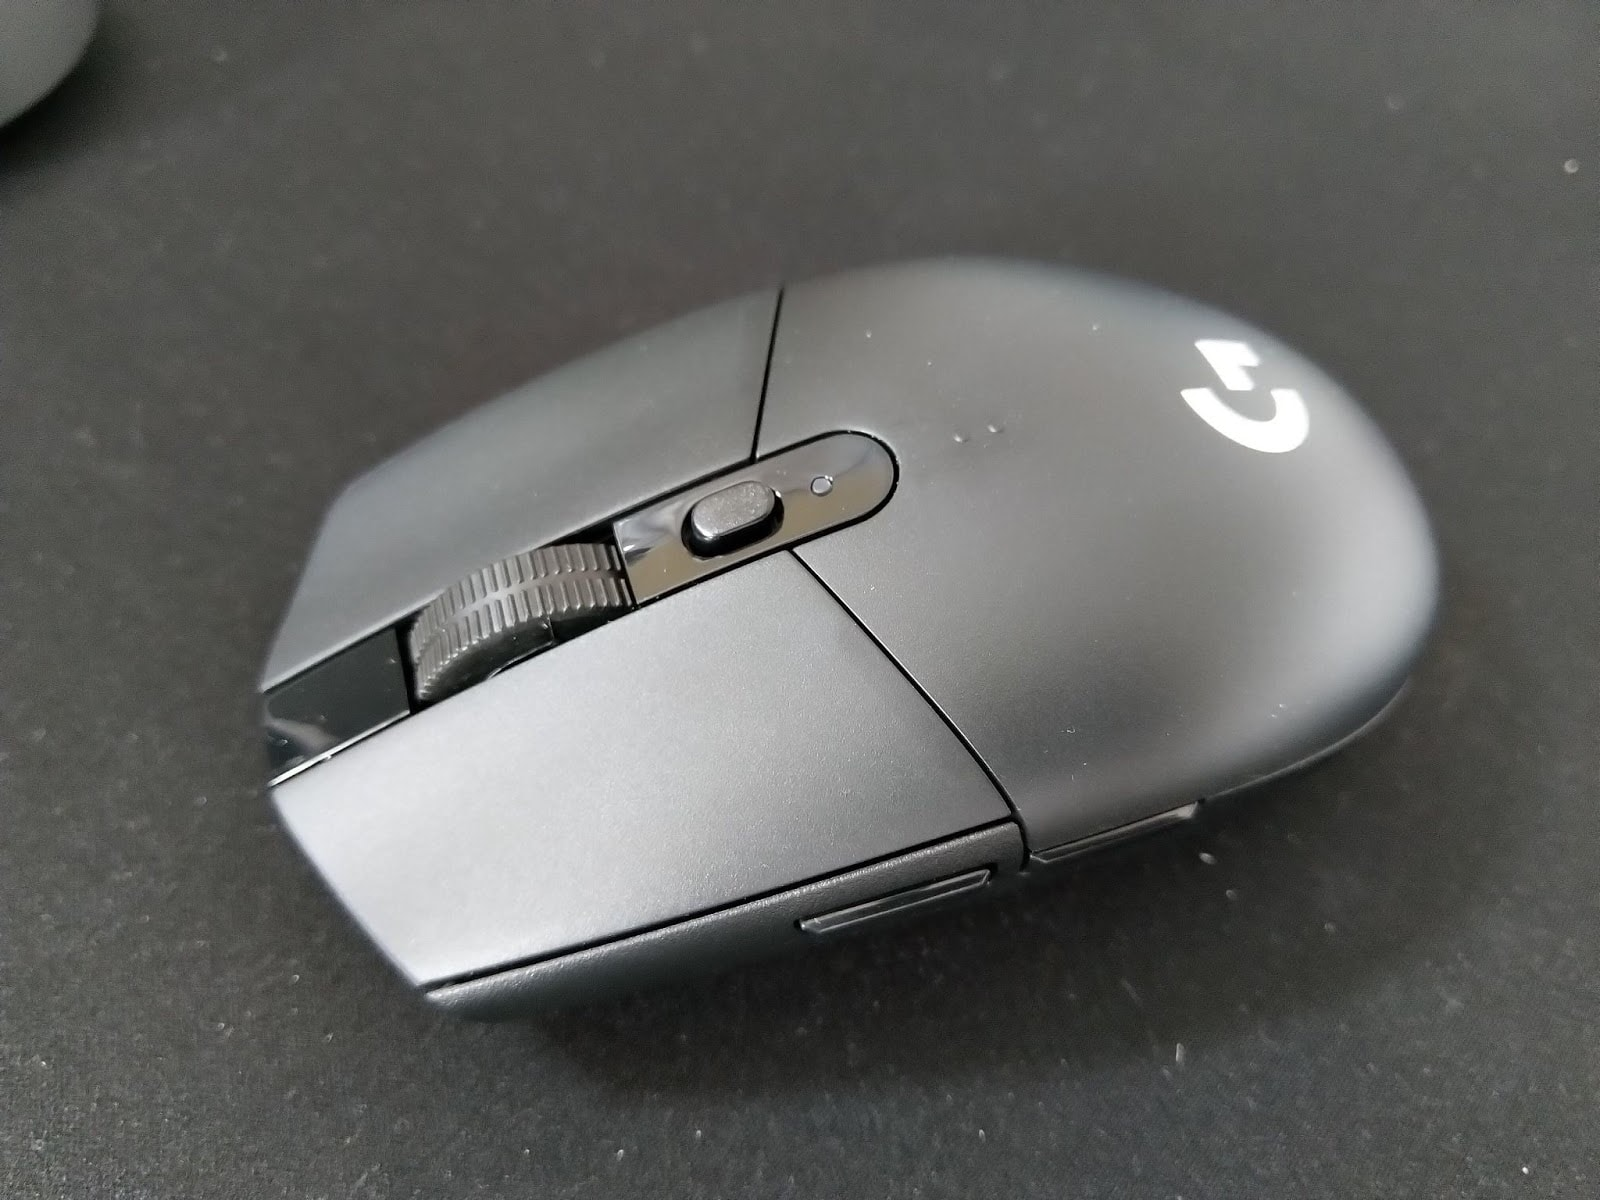 logitech g305 small gaming mouse